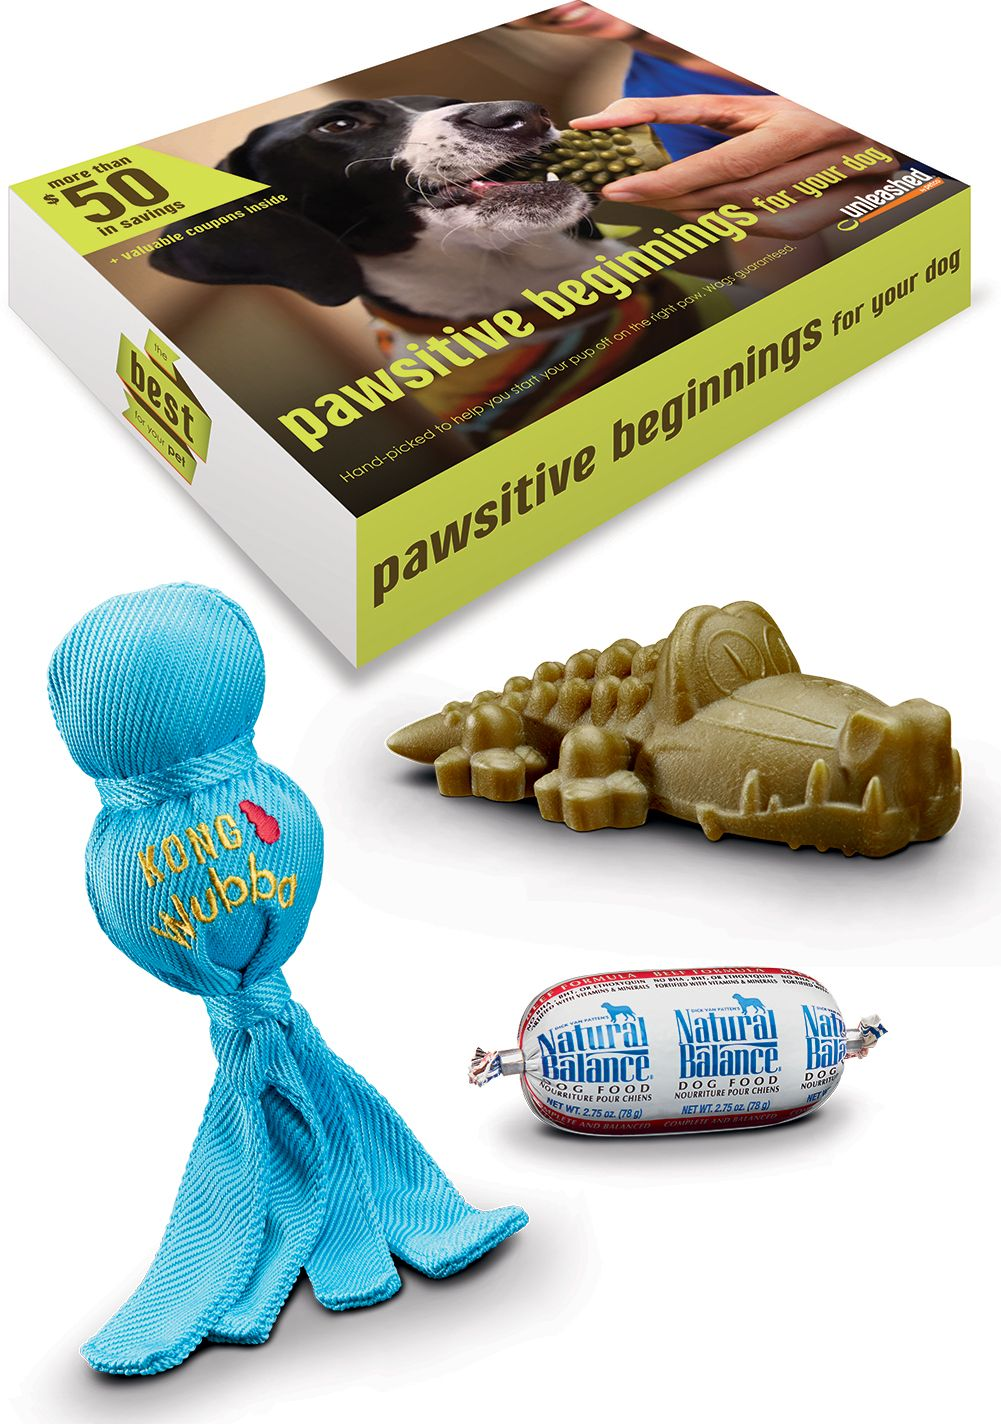 The Pawsome Beginnings Dog Box Includes Some Of Our Favorite Toys